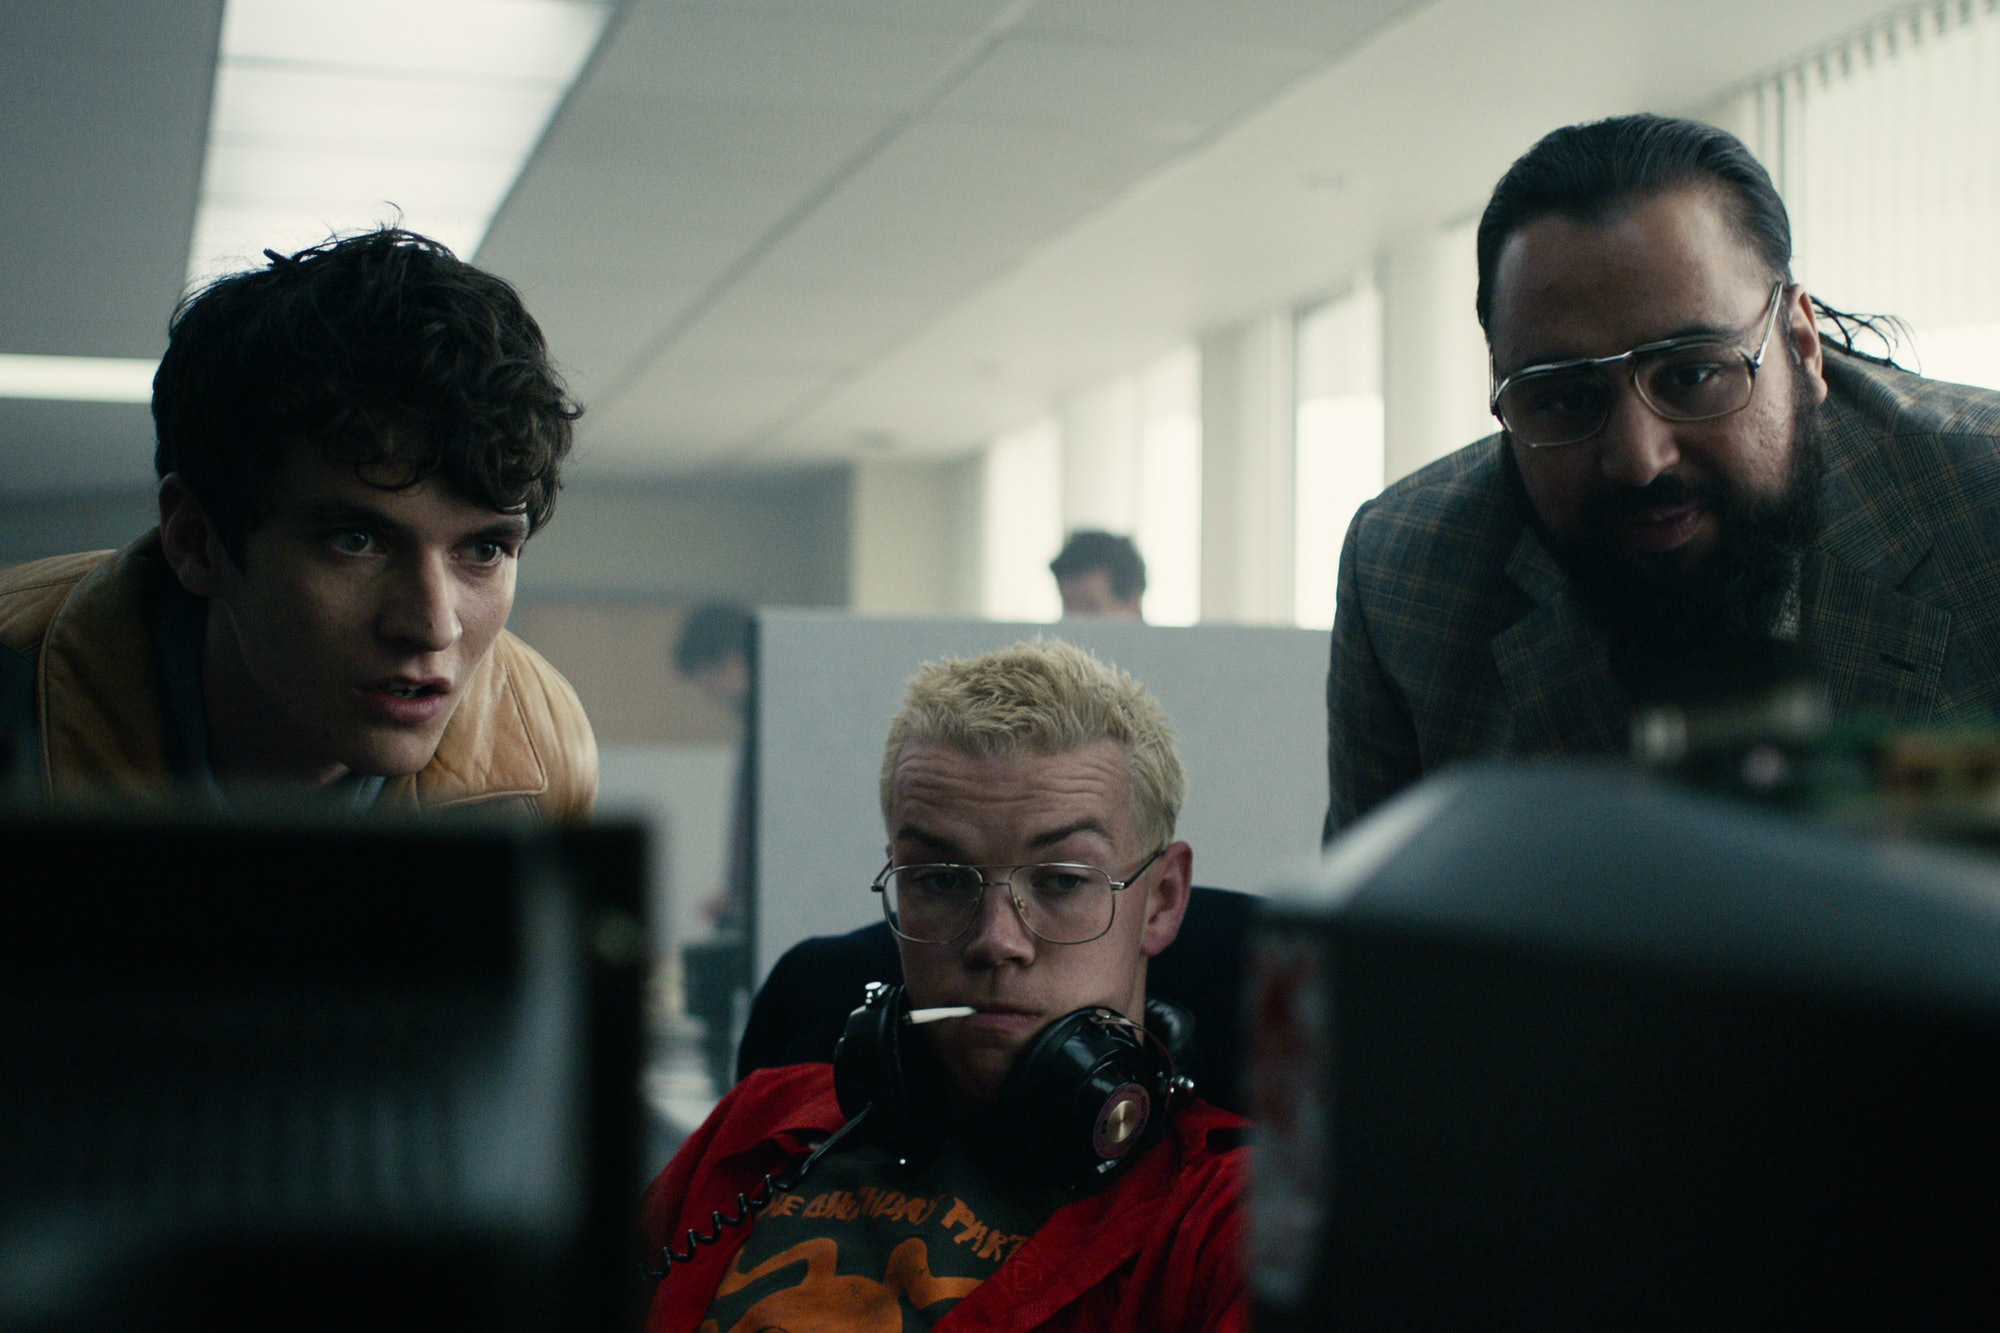 Still of Fionn Whitehead and Will Poulter in Tucker offices in Bandersnatch